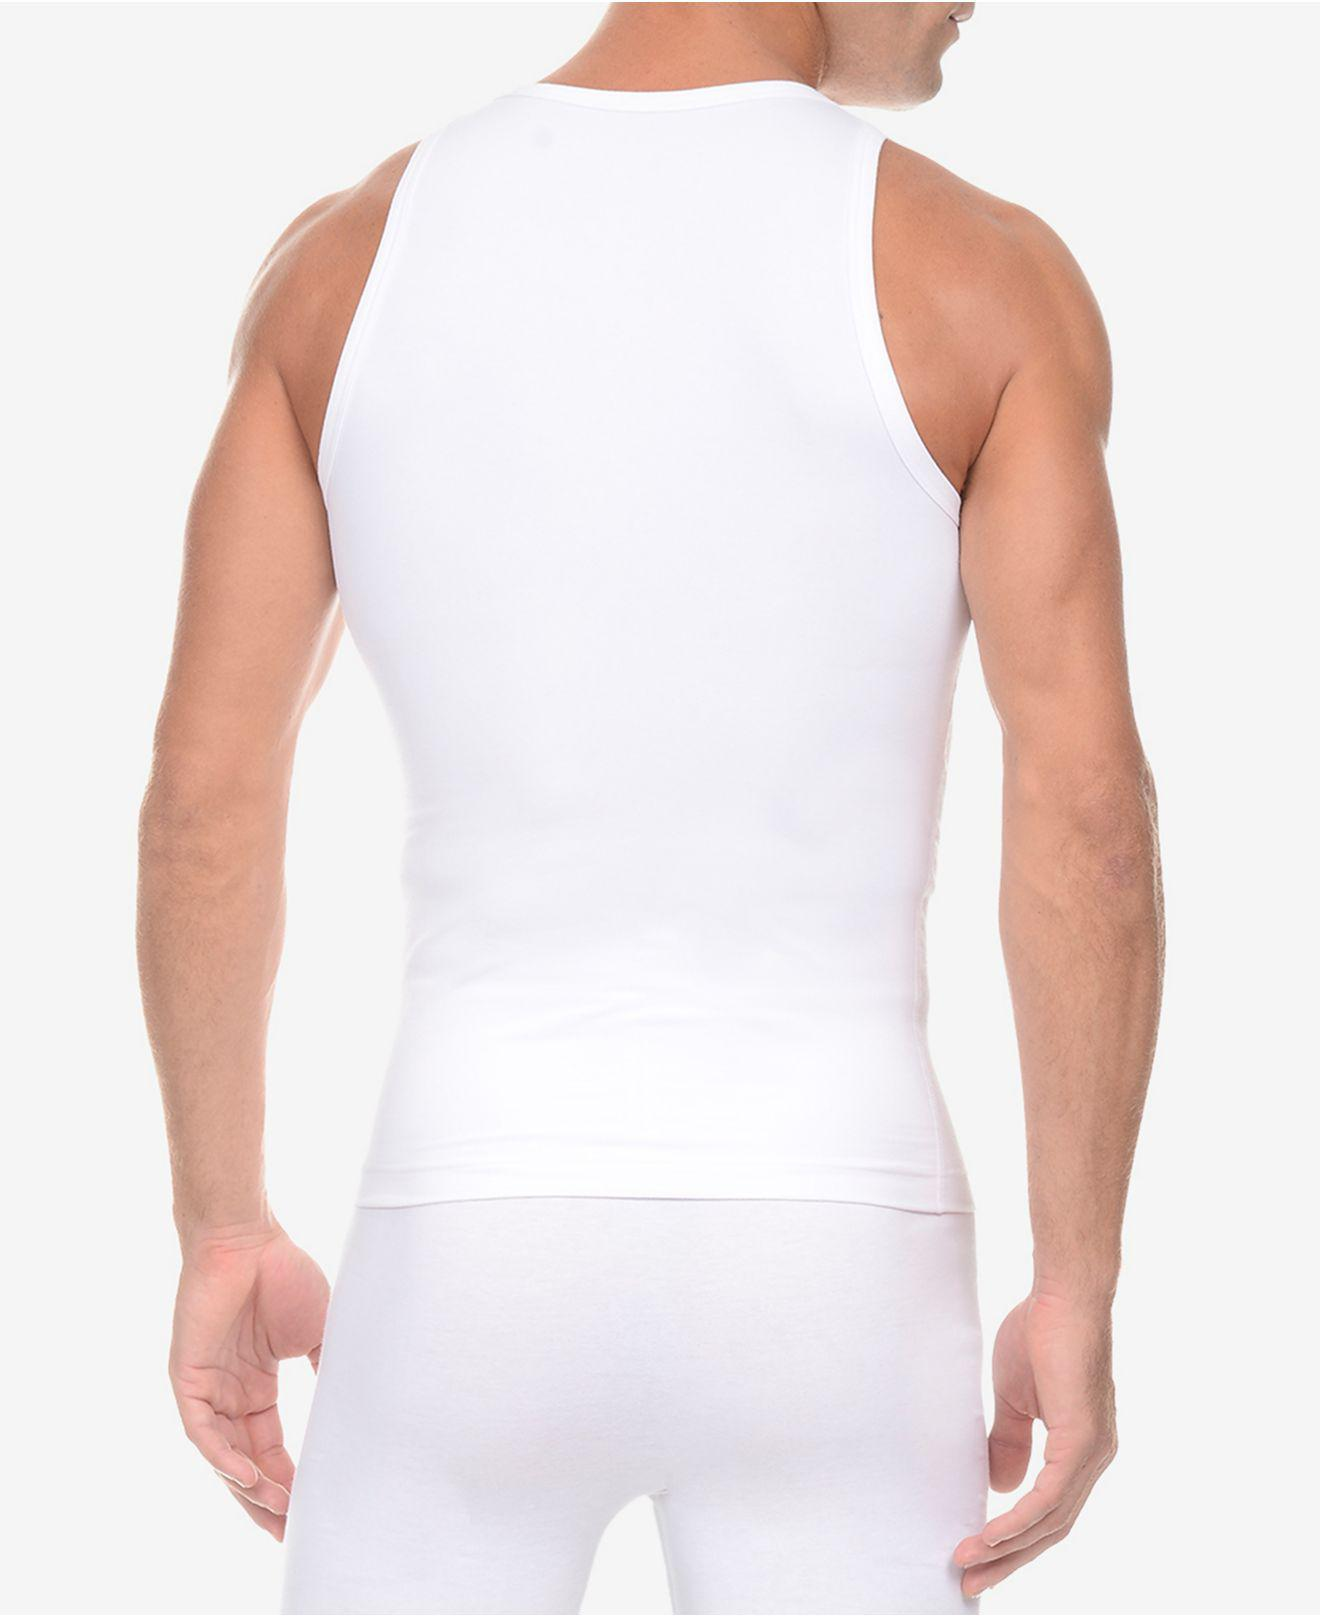 aa213bec01acb Lyst - 2xist Men s Shapewear Form Tank Top in White for Men - Save 33%